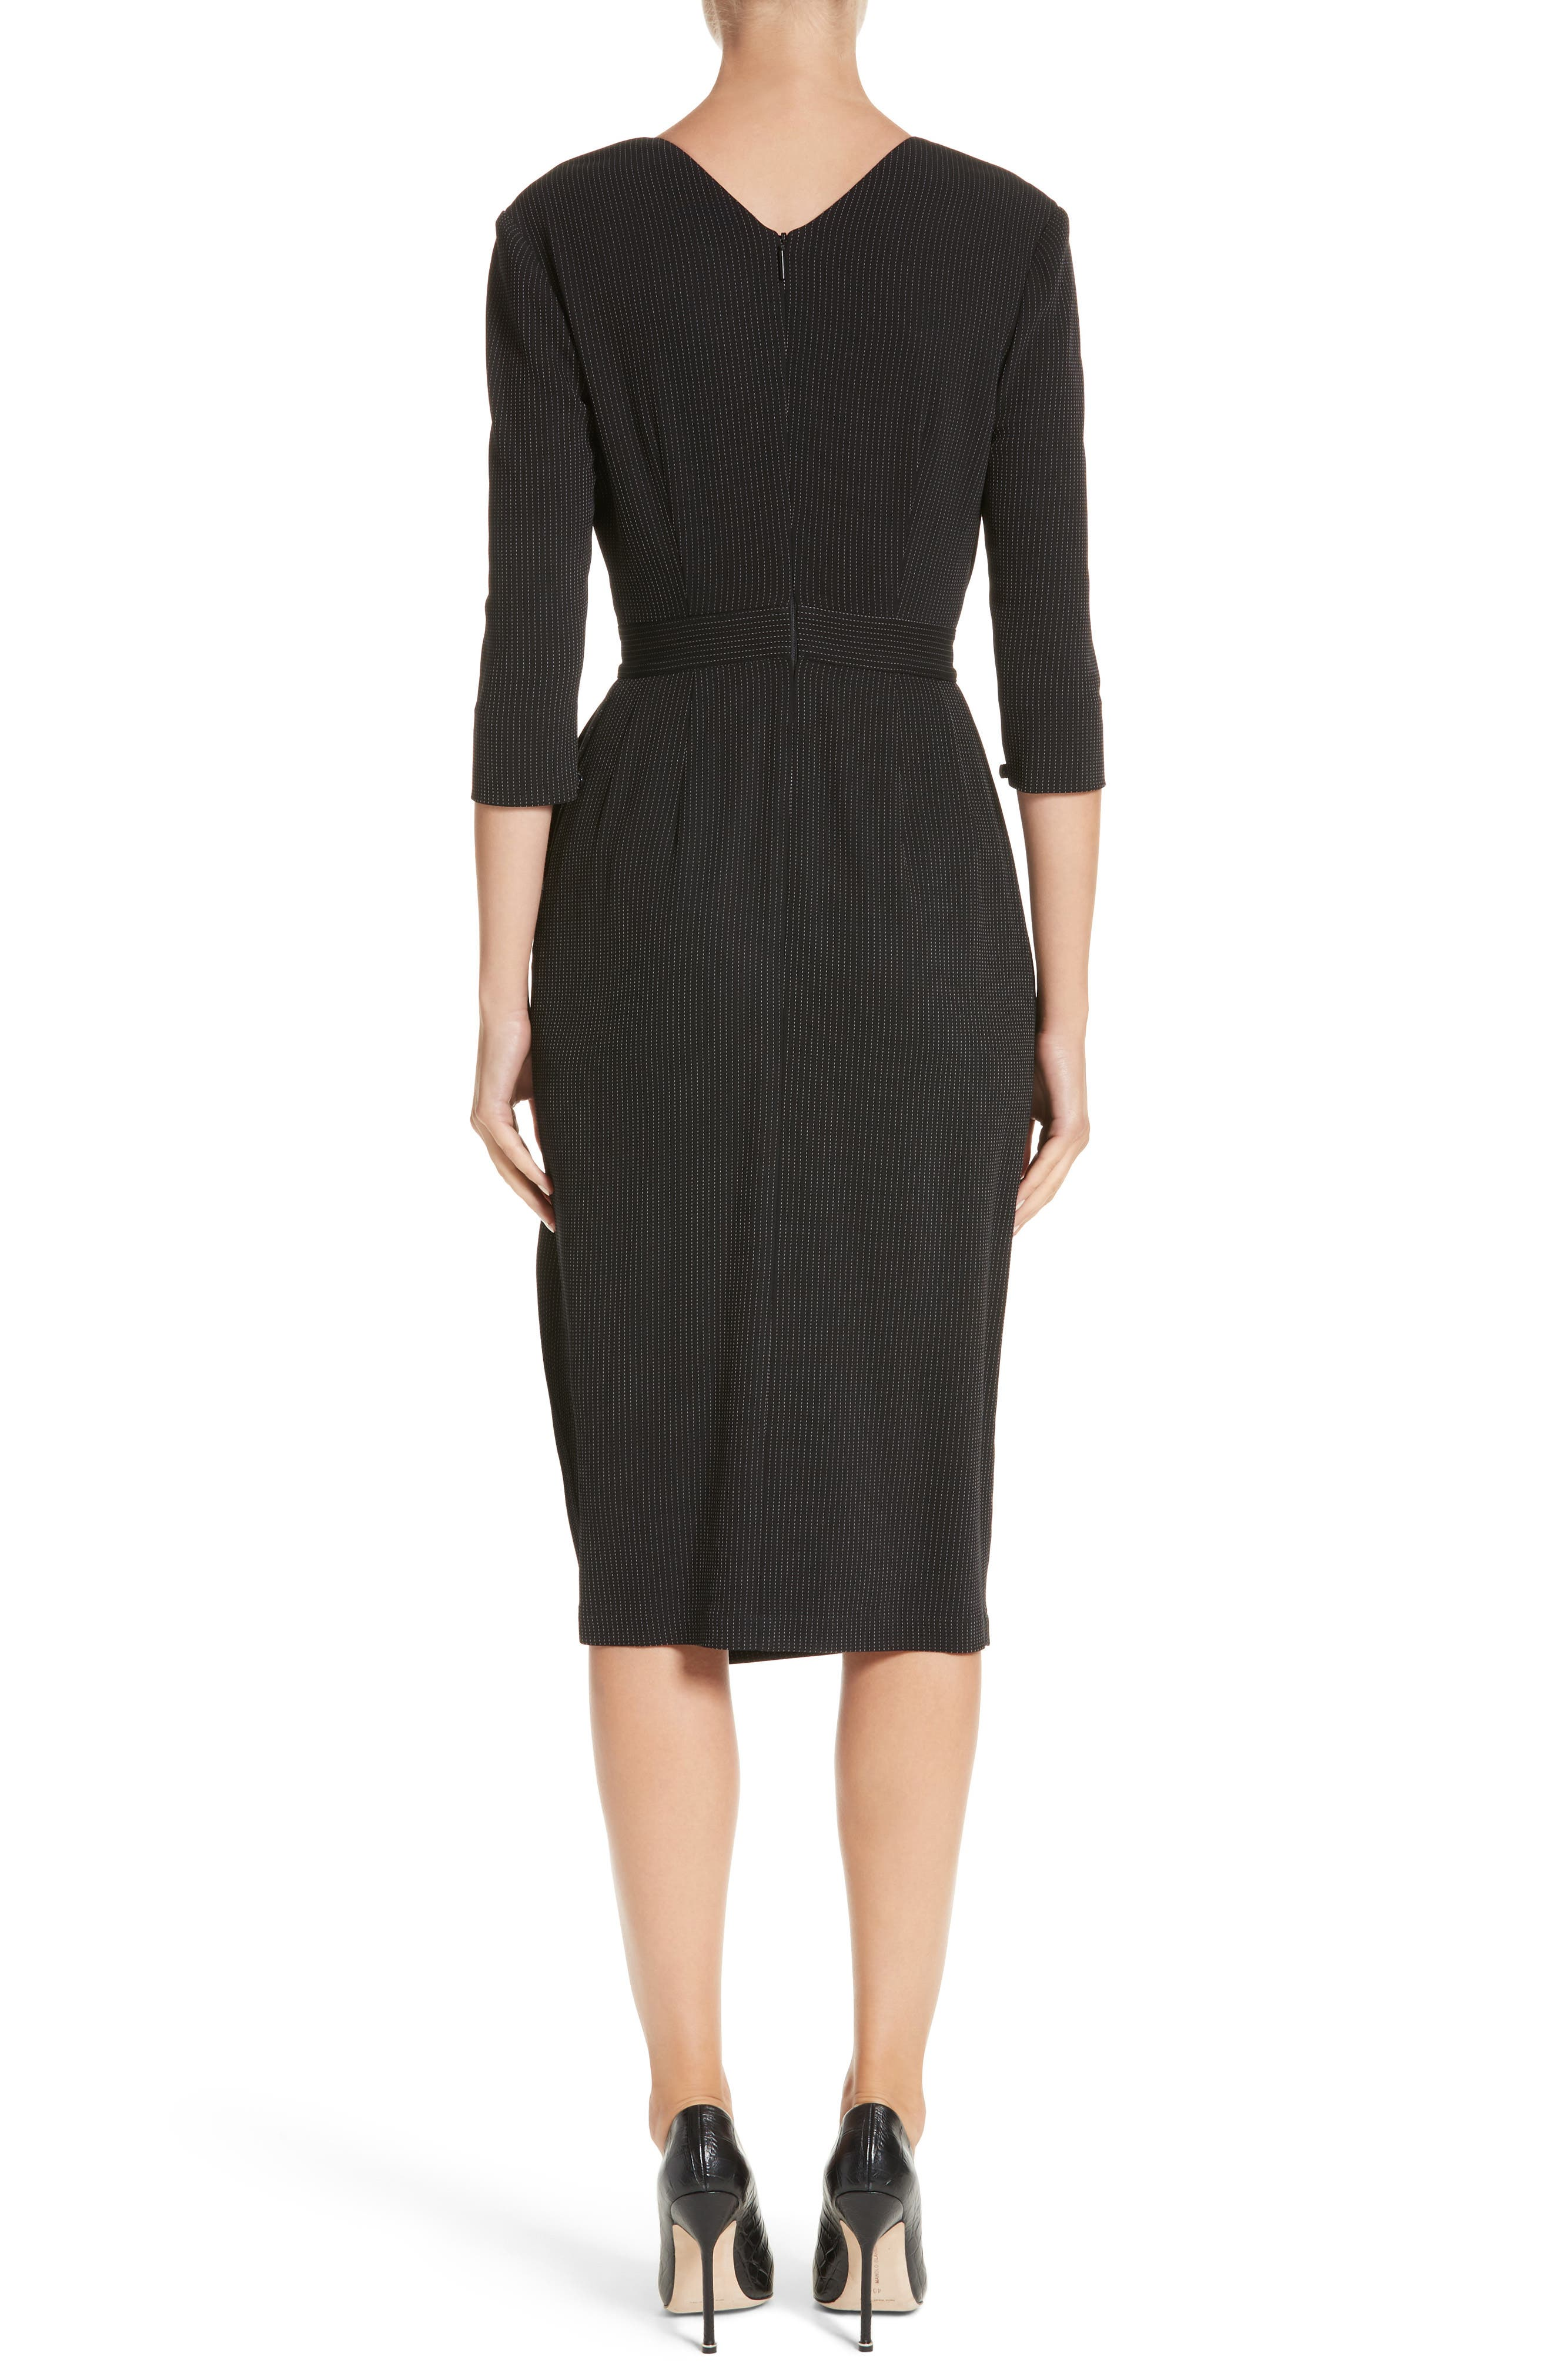 Jason Wu Pinstripe Jersey Sheath Dress,                             Alternate thumbnail 2, color,                             012